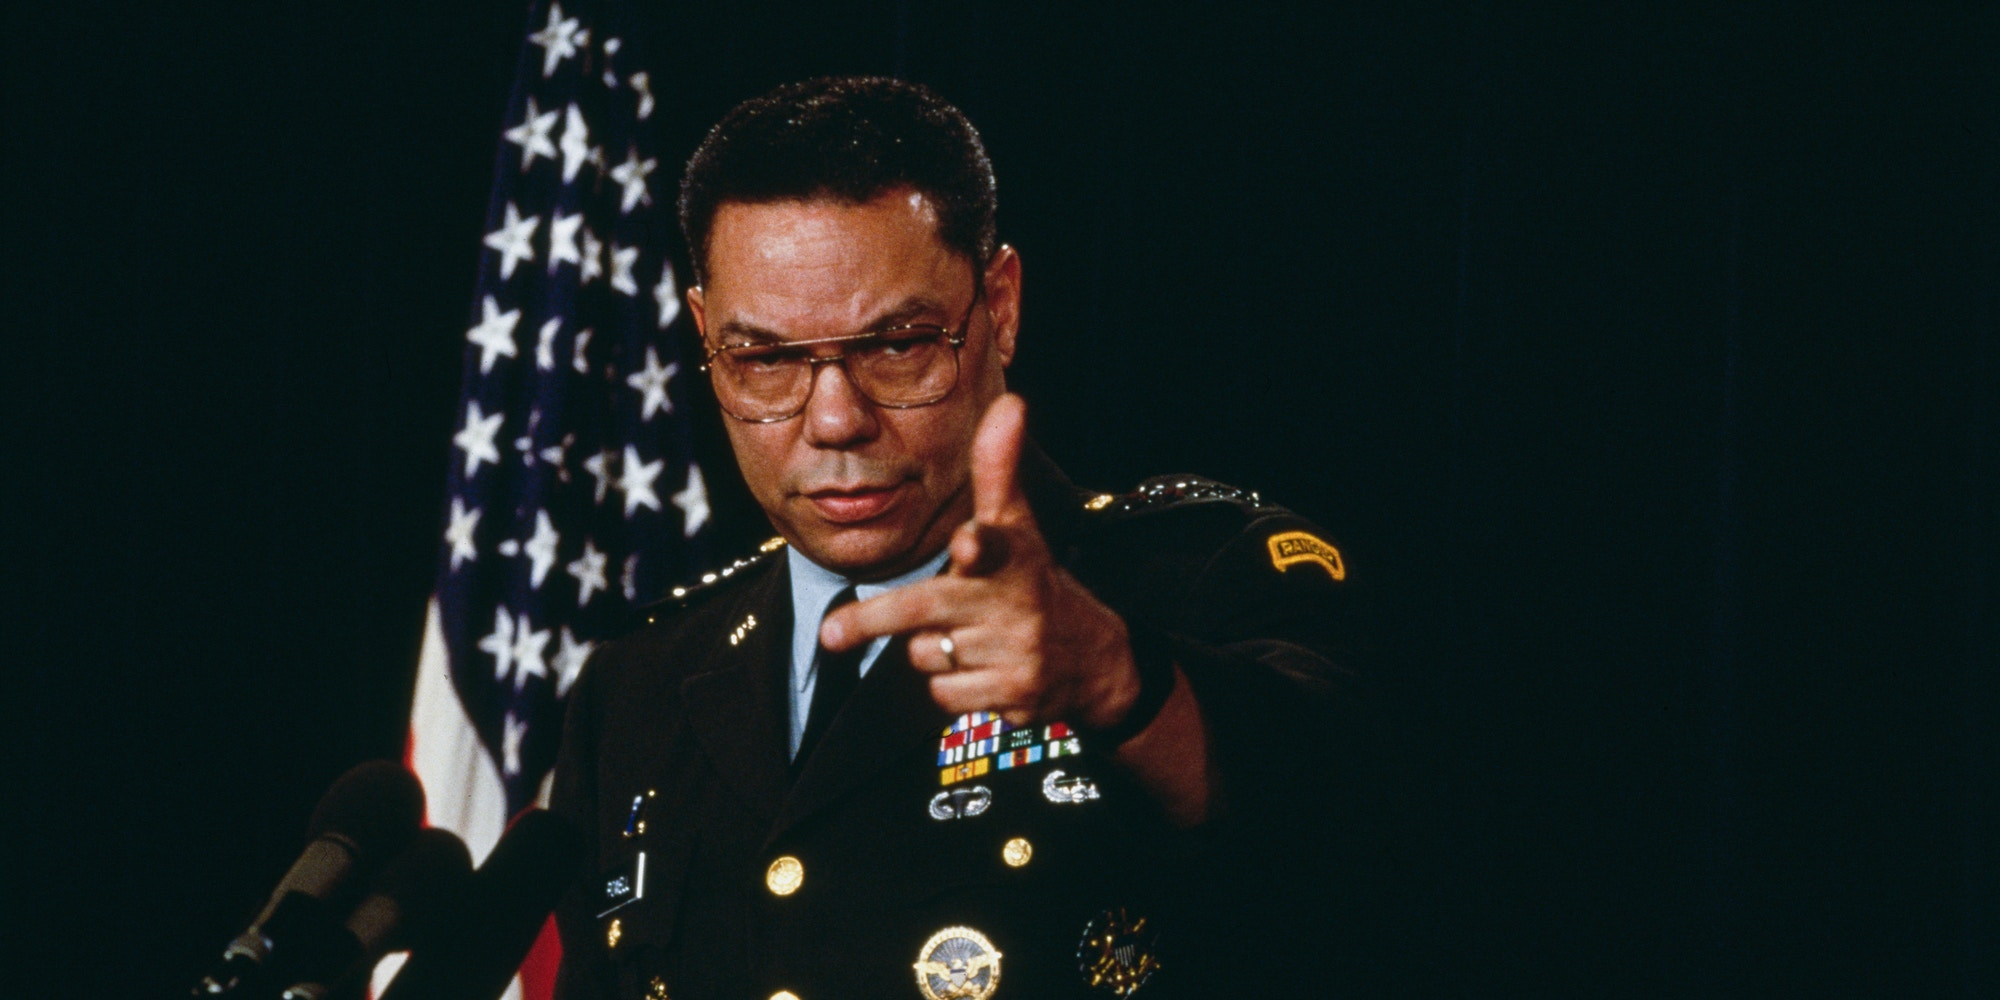 Colin Powell gives a briefing on Jan. 17, 1991.